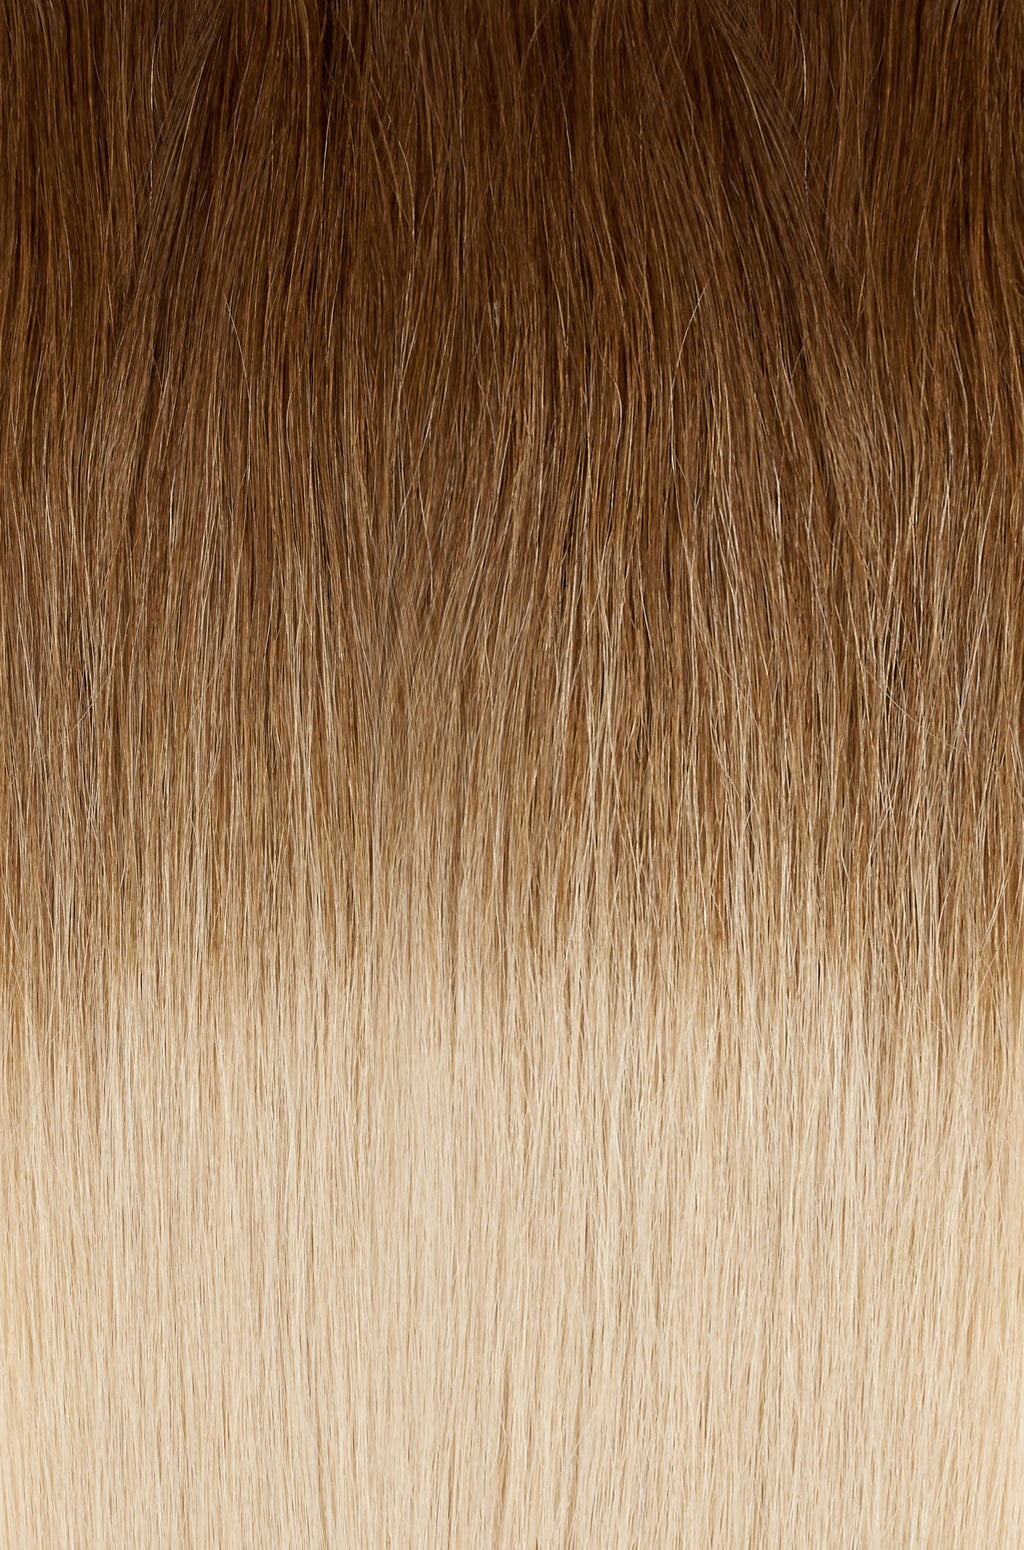 Ombre Caramel Brown (#4) to Dirty Blonde (#19C) Tape (50g)